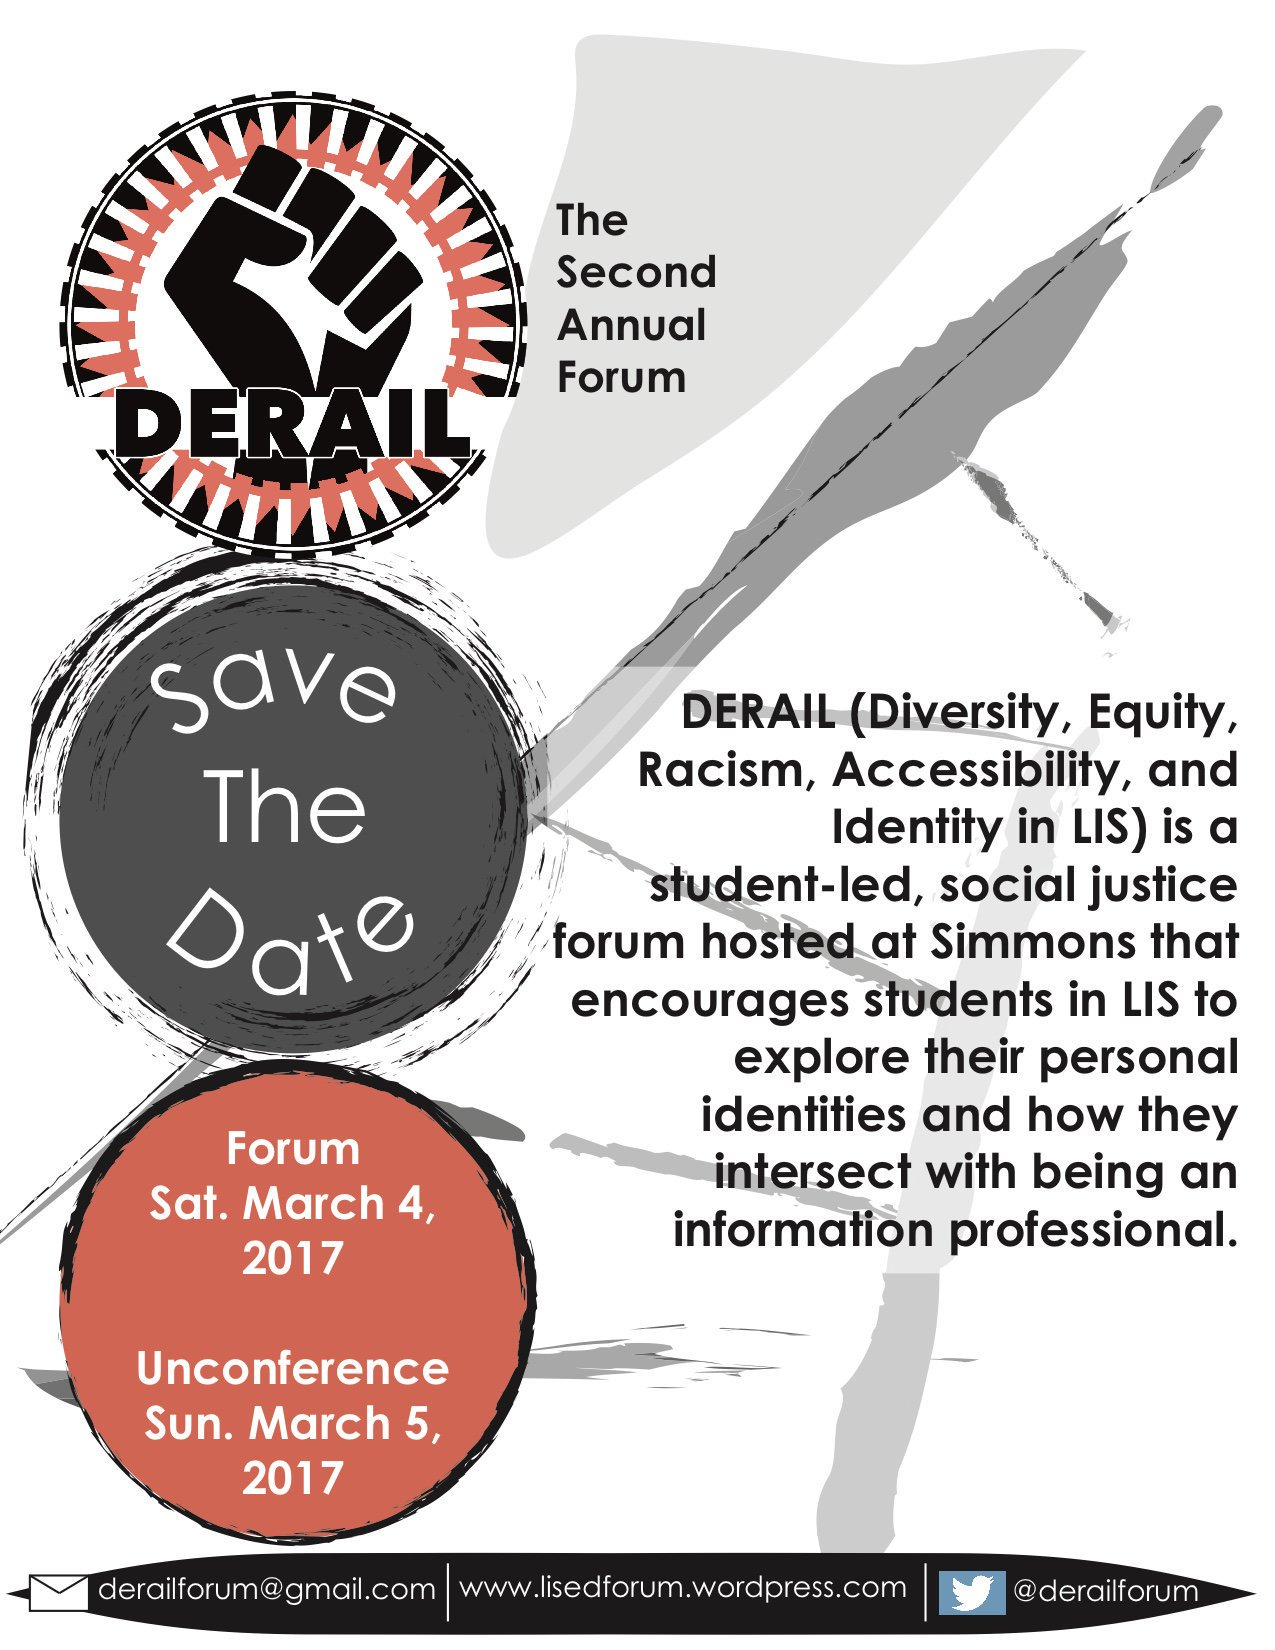 Happy #DERAIL2017! We'll be posting live updates from @derailforum all day. Full schedule here! https://t.co/CEfrF6AgO0 https://t.co/oZ4ugJmqWJ